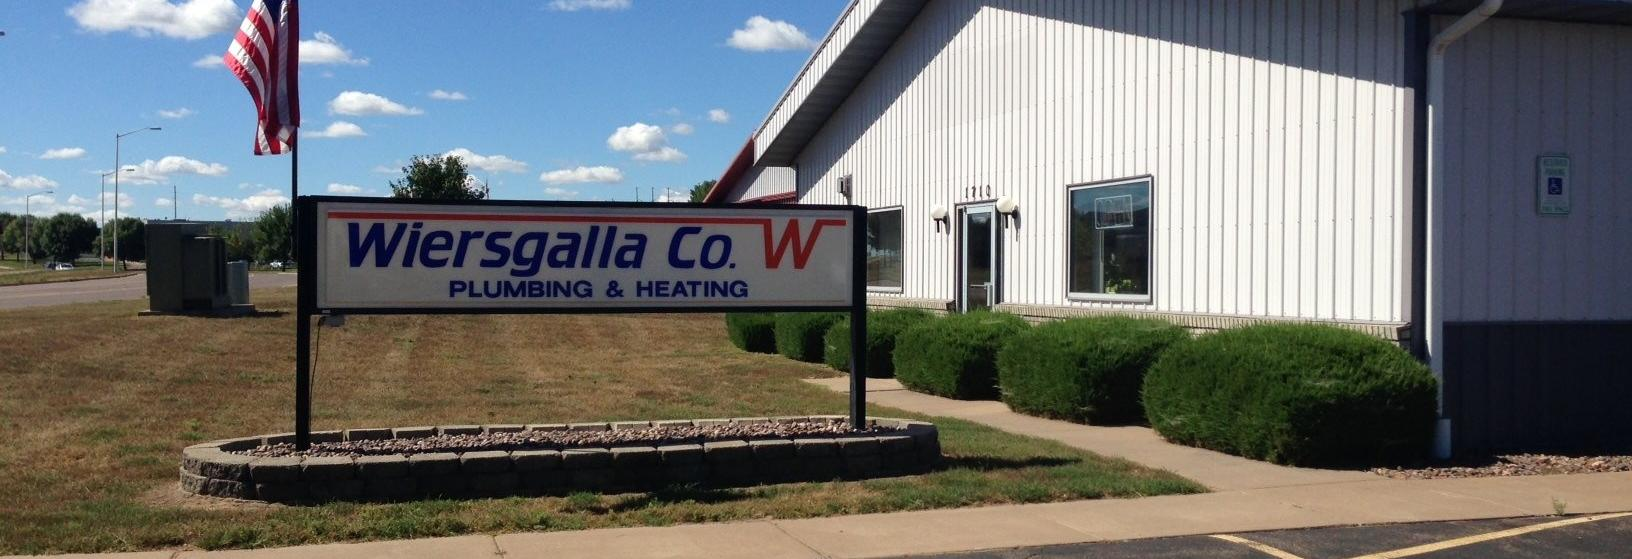 Wiersgalla Plumbing & Heating Company banner Eau Claire, WI